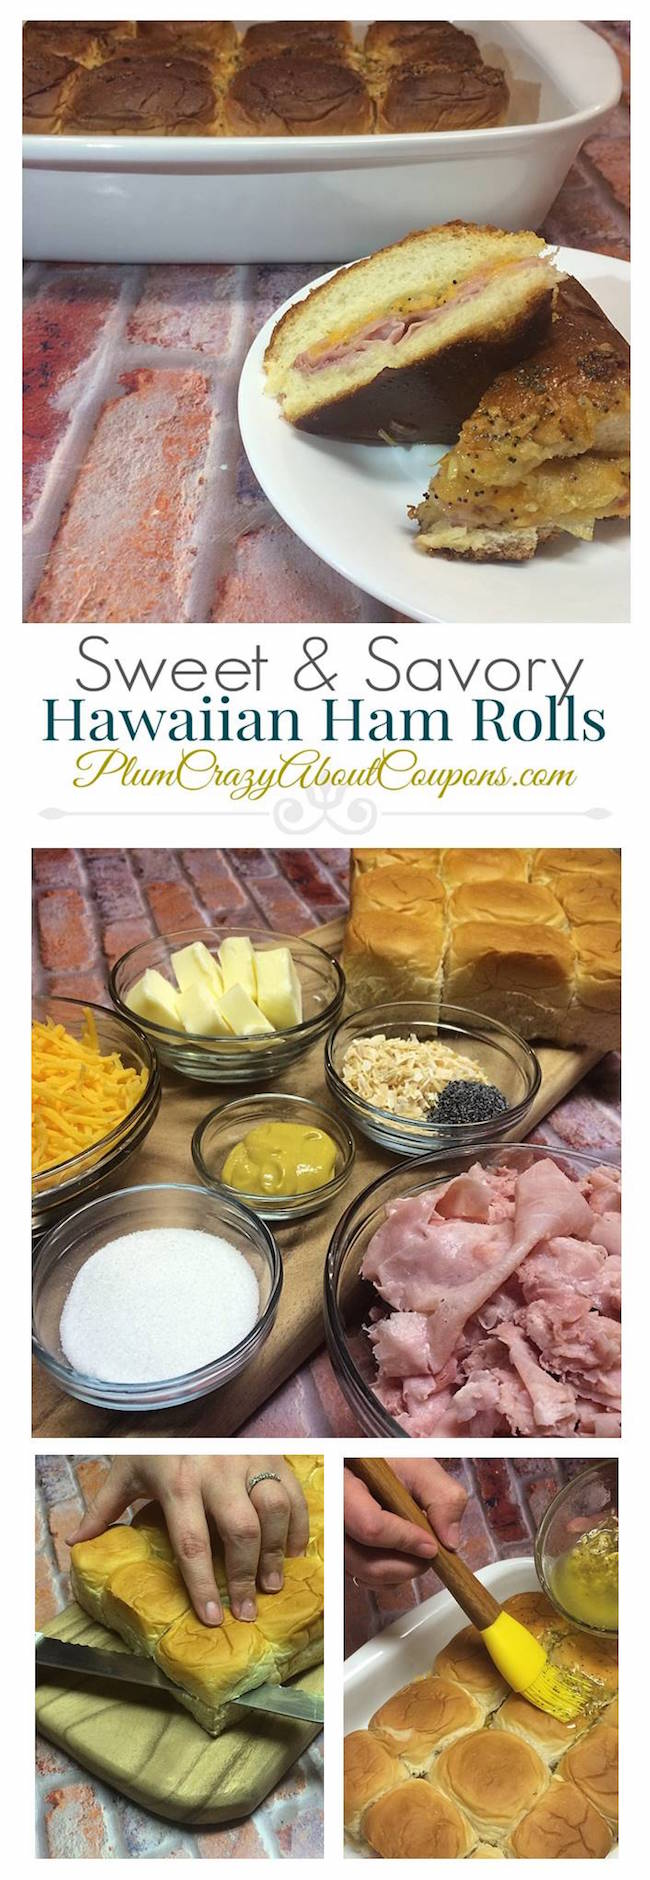 Sweet & Savory Ham Rolls recipe is something easy to make for anytime. We even include Weight Watchers Smart Points, Points Plus & Points.